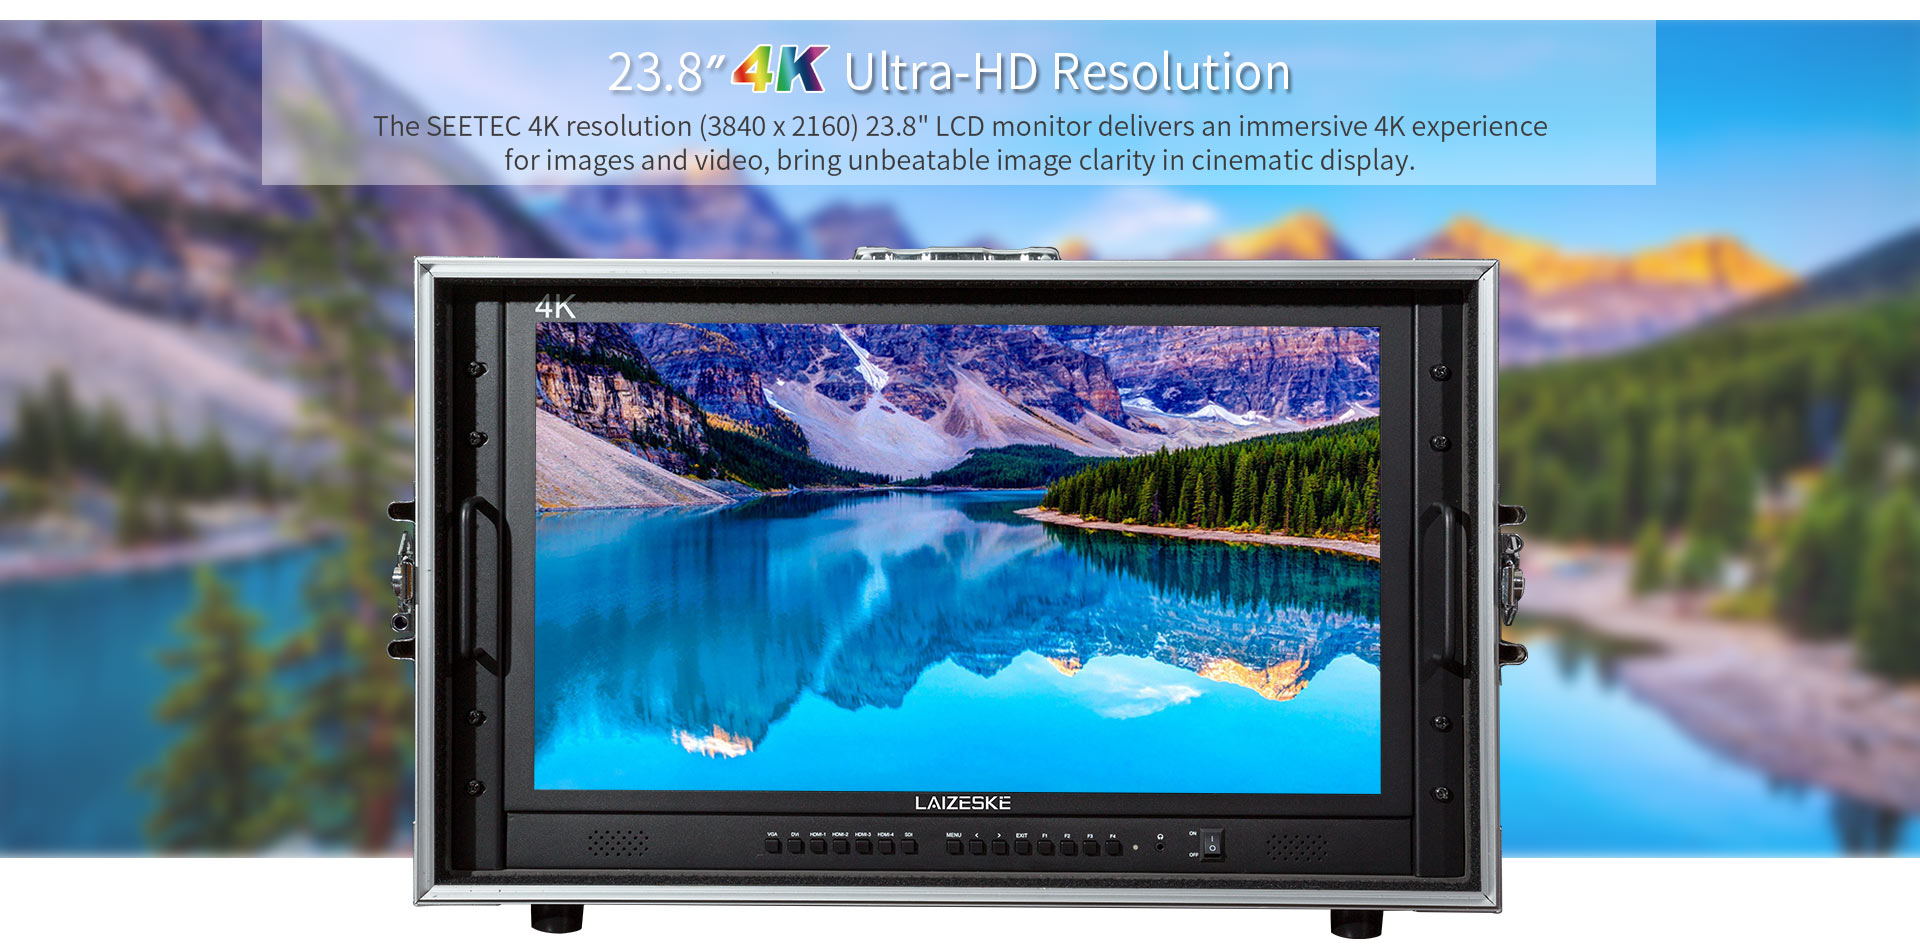 "laizeske 23.8"" 4k(3840 x 2160) ultra-hd resolution carry-on"